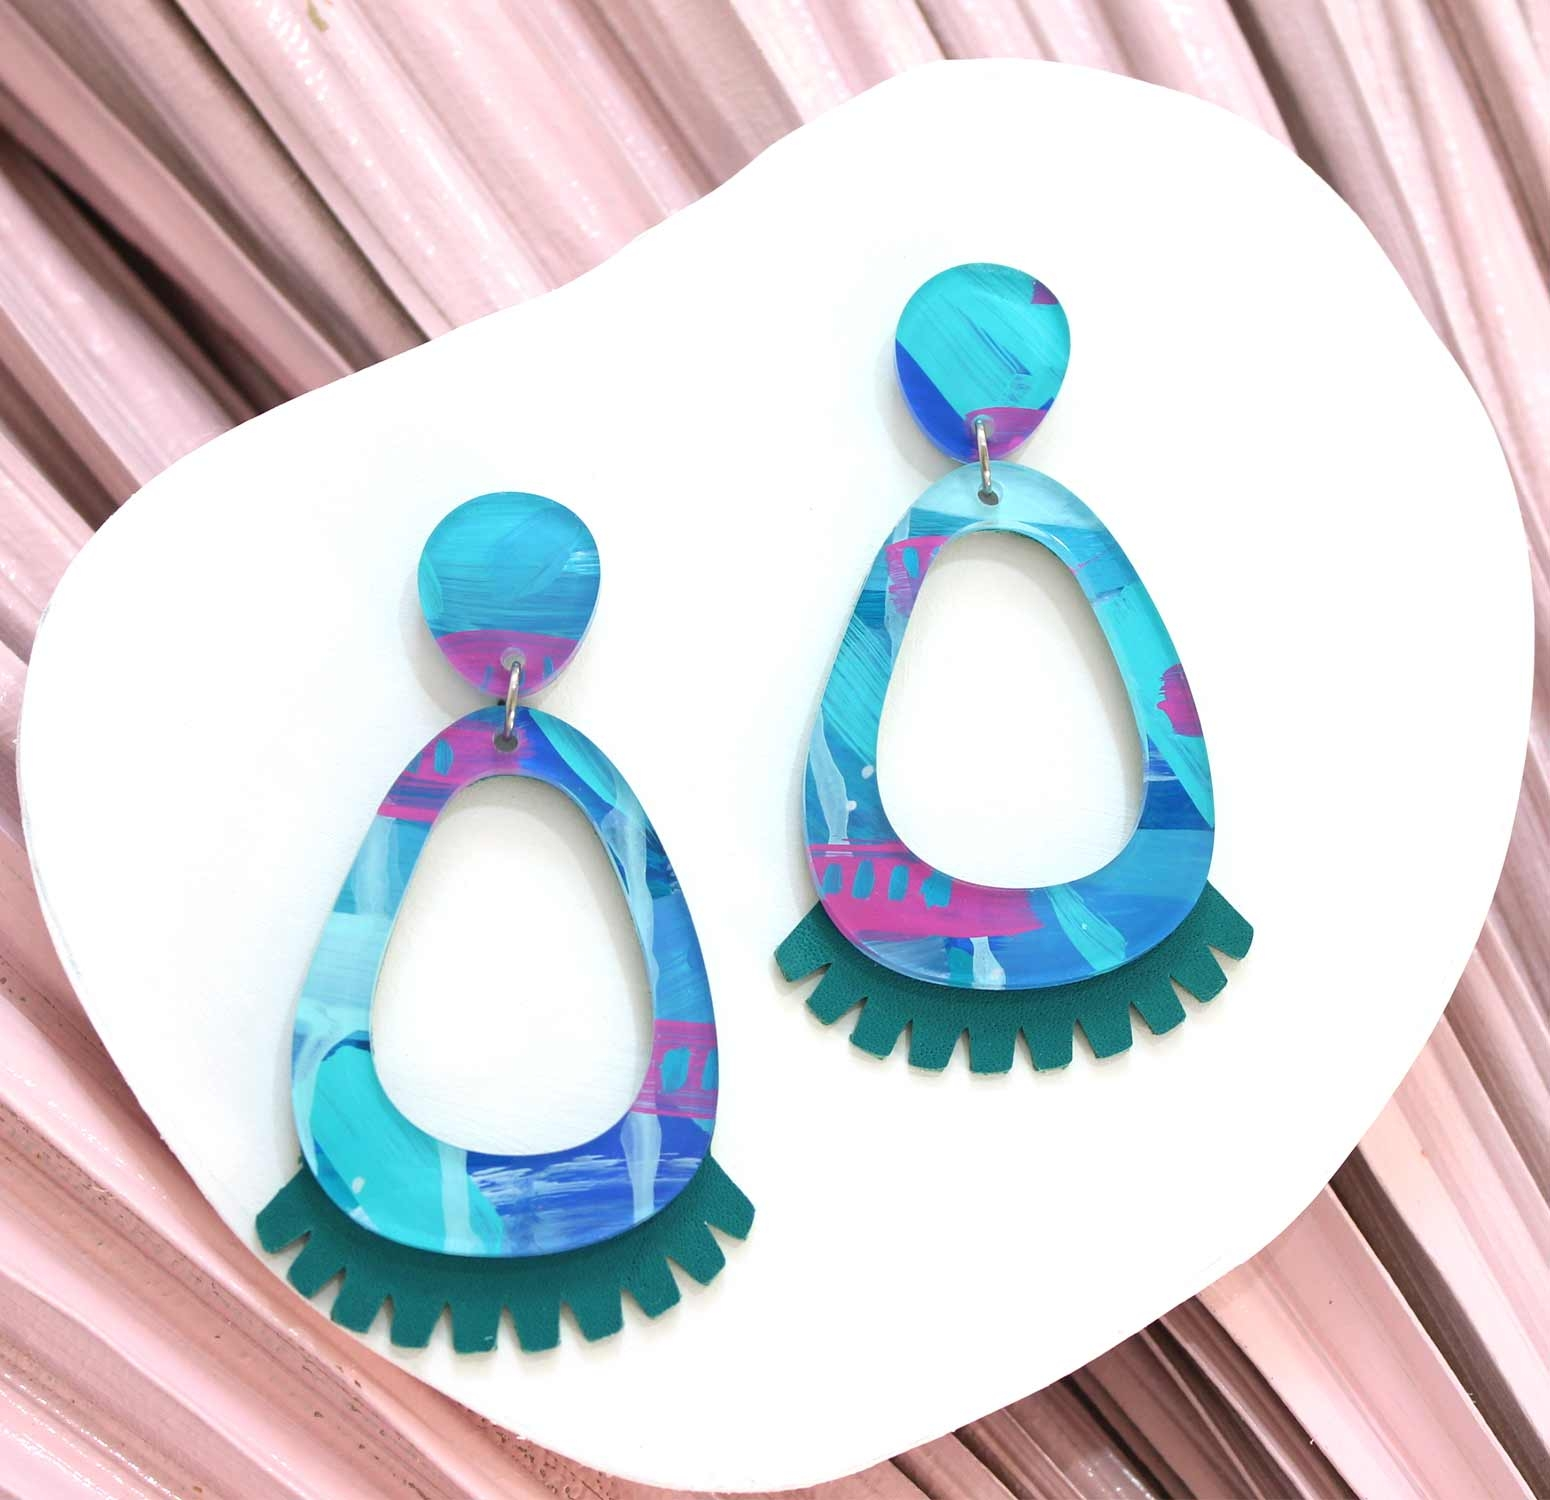 Edna - Ice Queen – Teal Leather Statement Earrings, hand painted